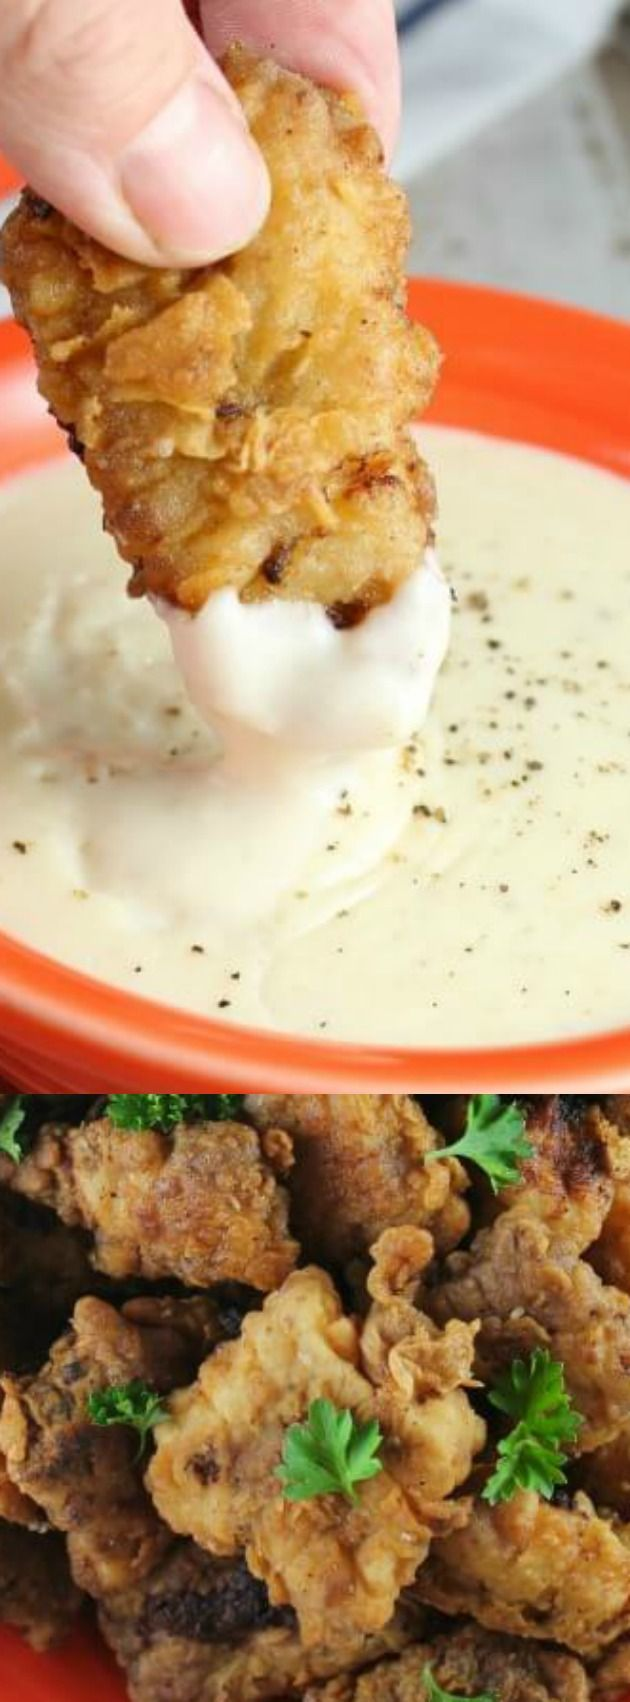 These Chicken Fried Steak Bites with Country Gravy from Miss in the Kitchen are a classic southern dish that your family will love to eat for dinner — or as a game day appetizer!